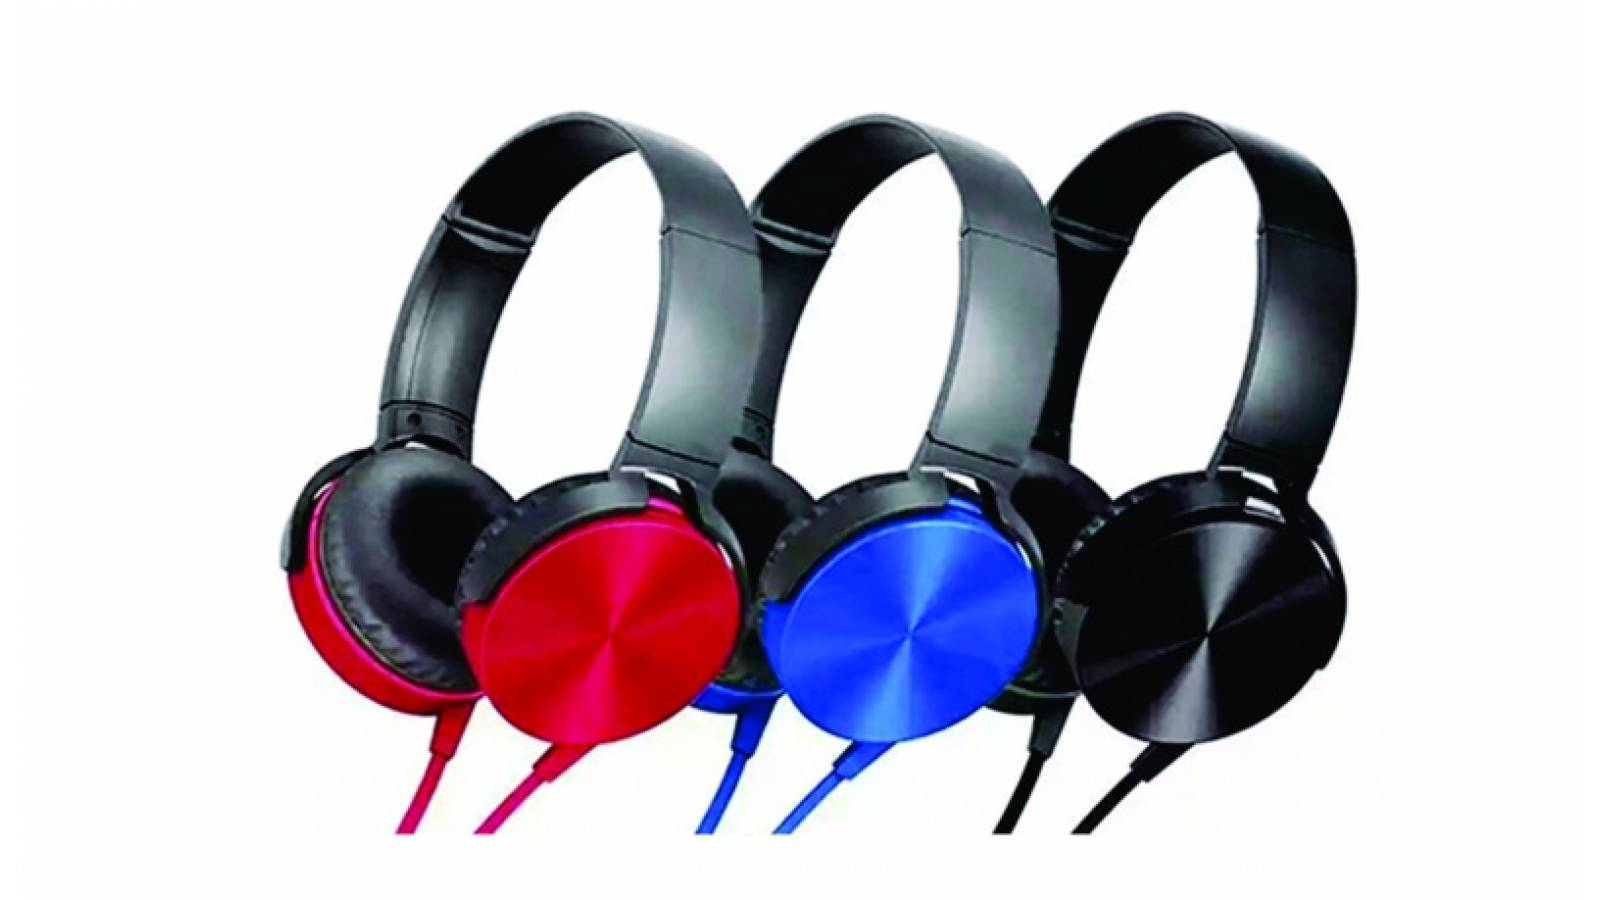 AURICULARES CON CABLE LEDSTAR